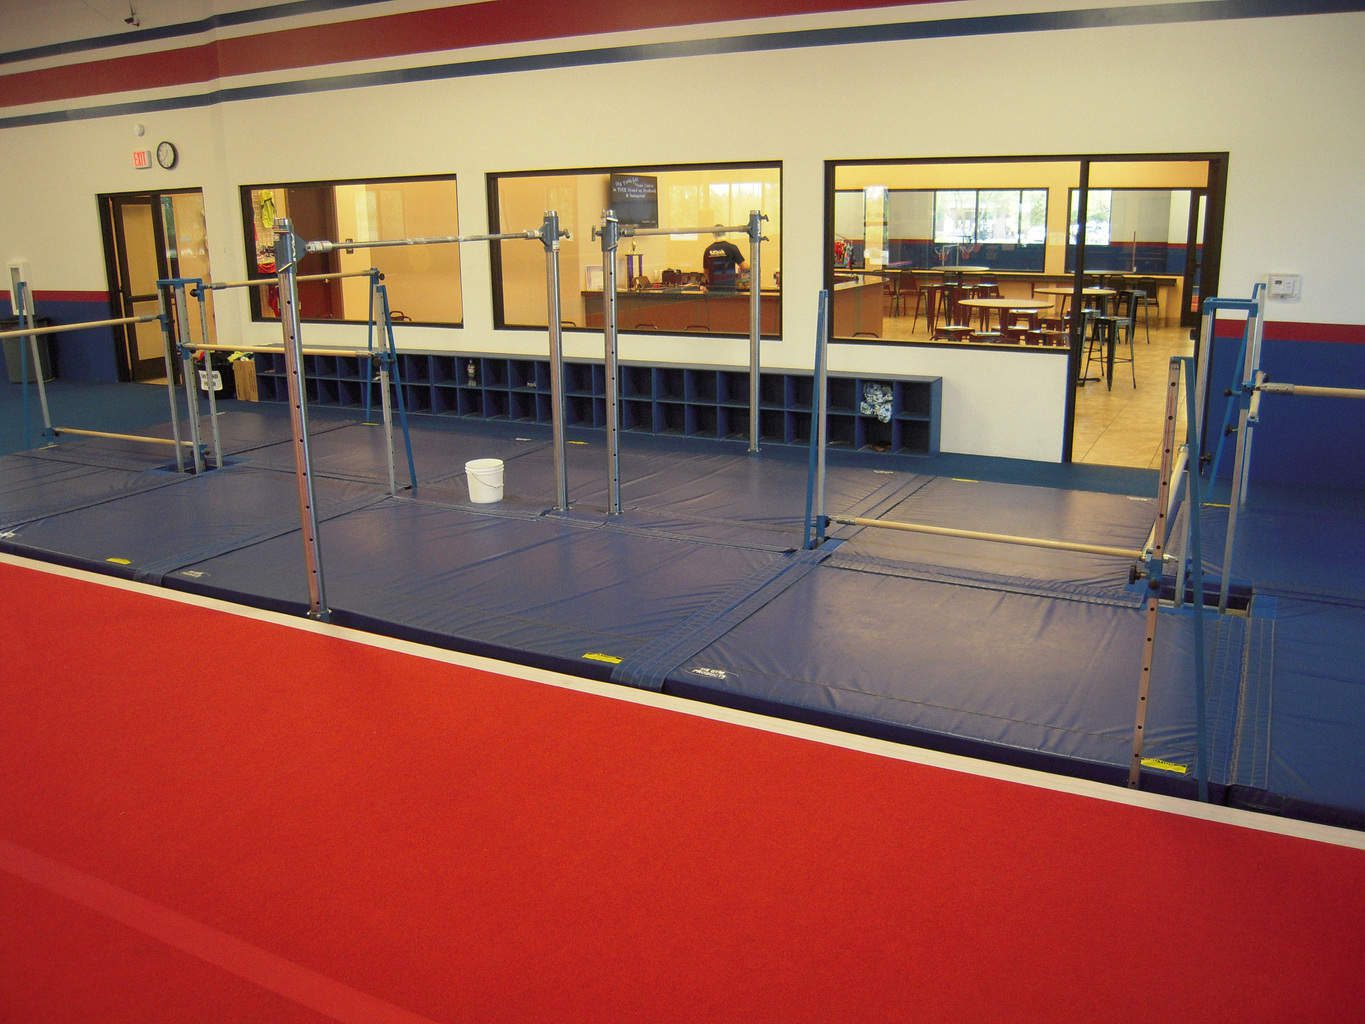 USA Youth Fitness Center The massive low bar system